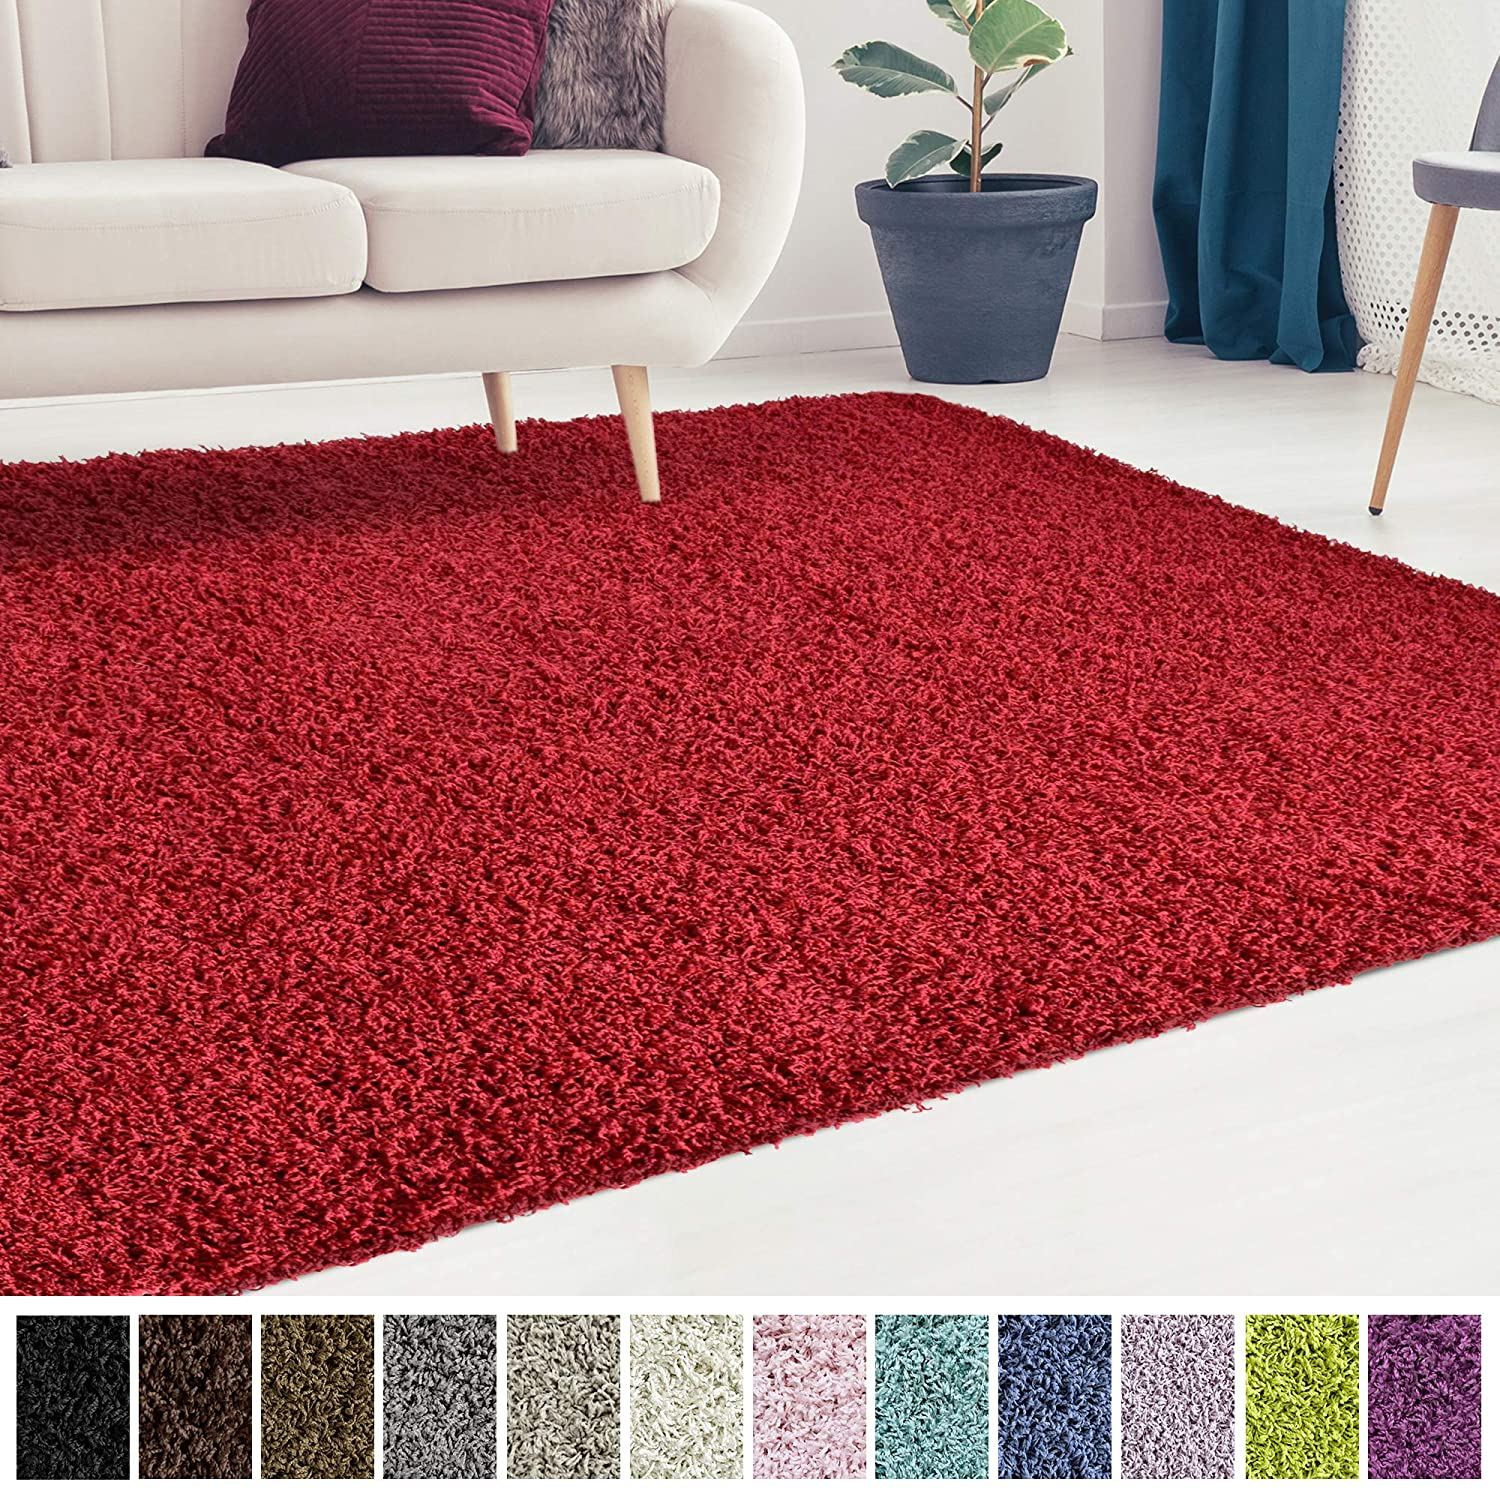 Icustomrug Cozy And Soft Solid Shag Rug 8x8 Red Square Area Rug Ideal To Enhance Your Living Room And Bedroom Decor